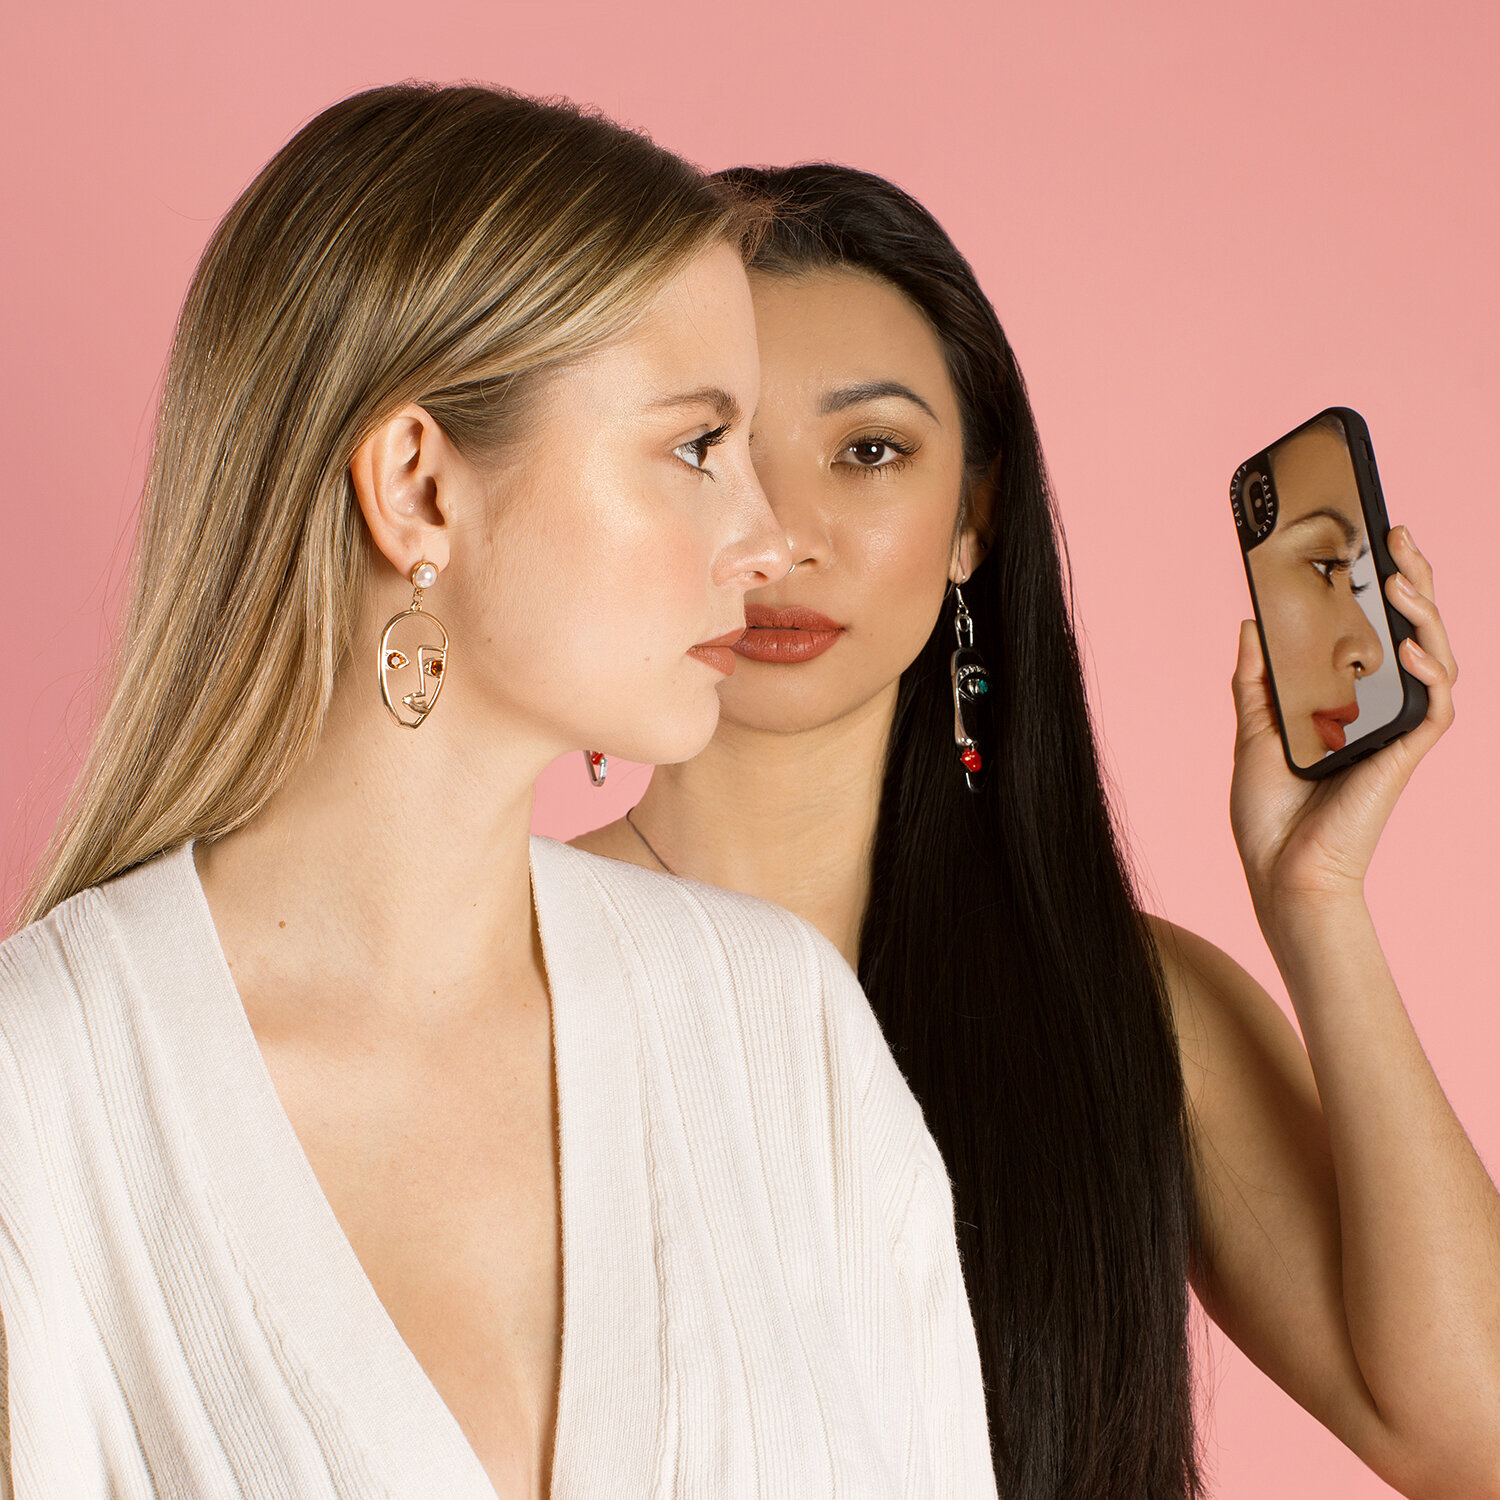 Seeing Double - A photo editorial featuring the launch of Casetify's reflective phone case. Directed, produced, and edited by me, Seeing Double uses perspective and post production magic to obtain its surreal flare.